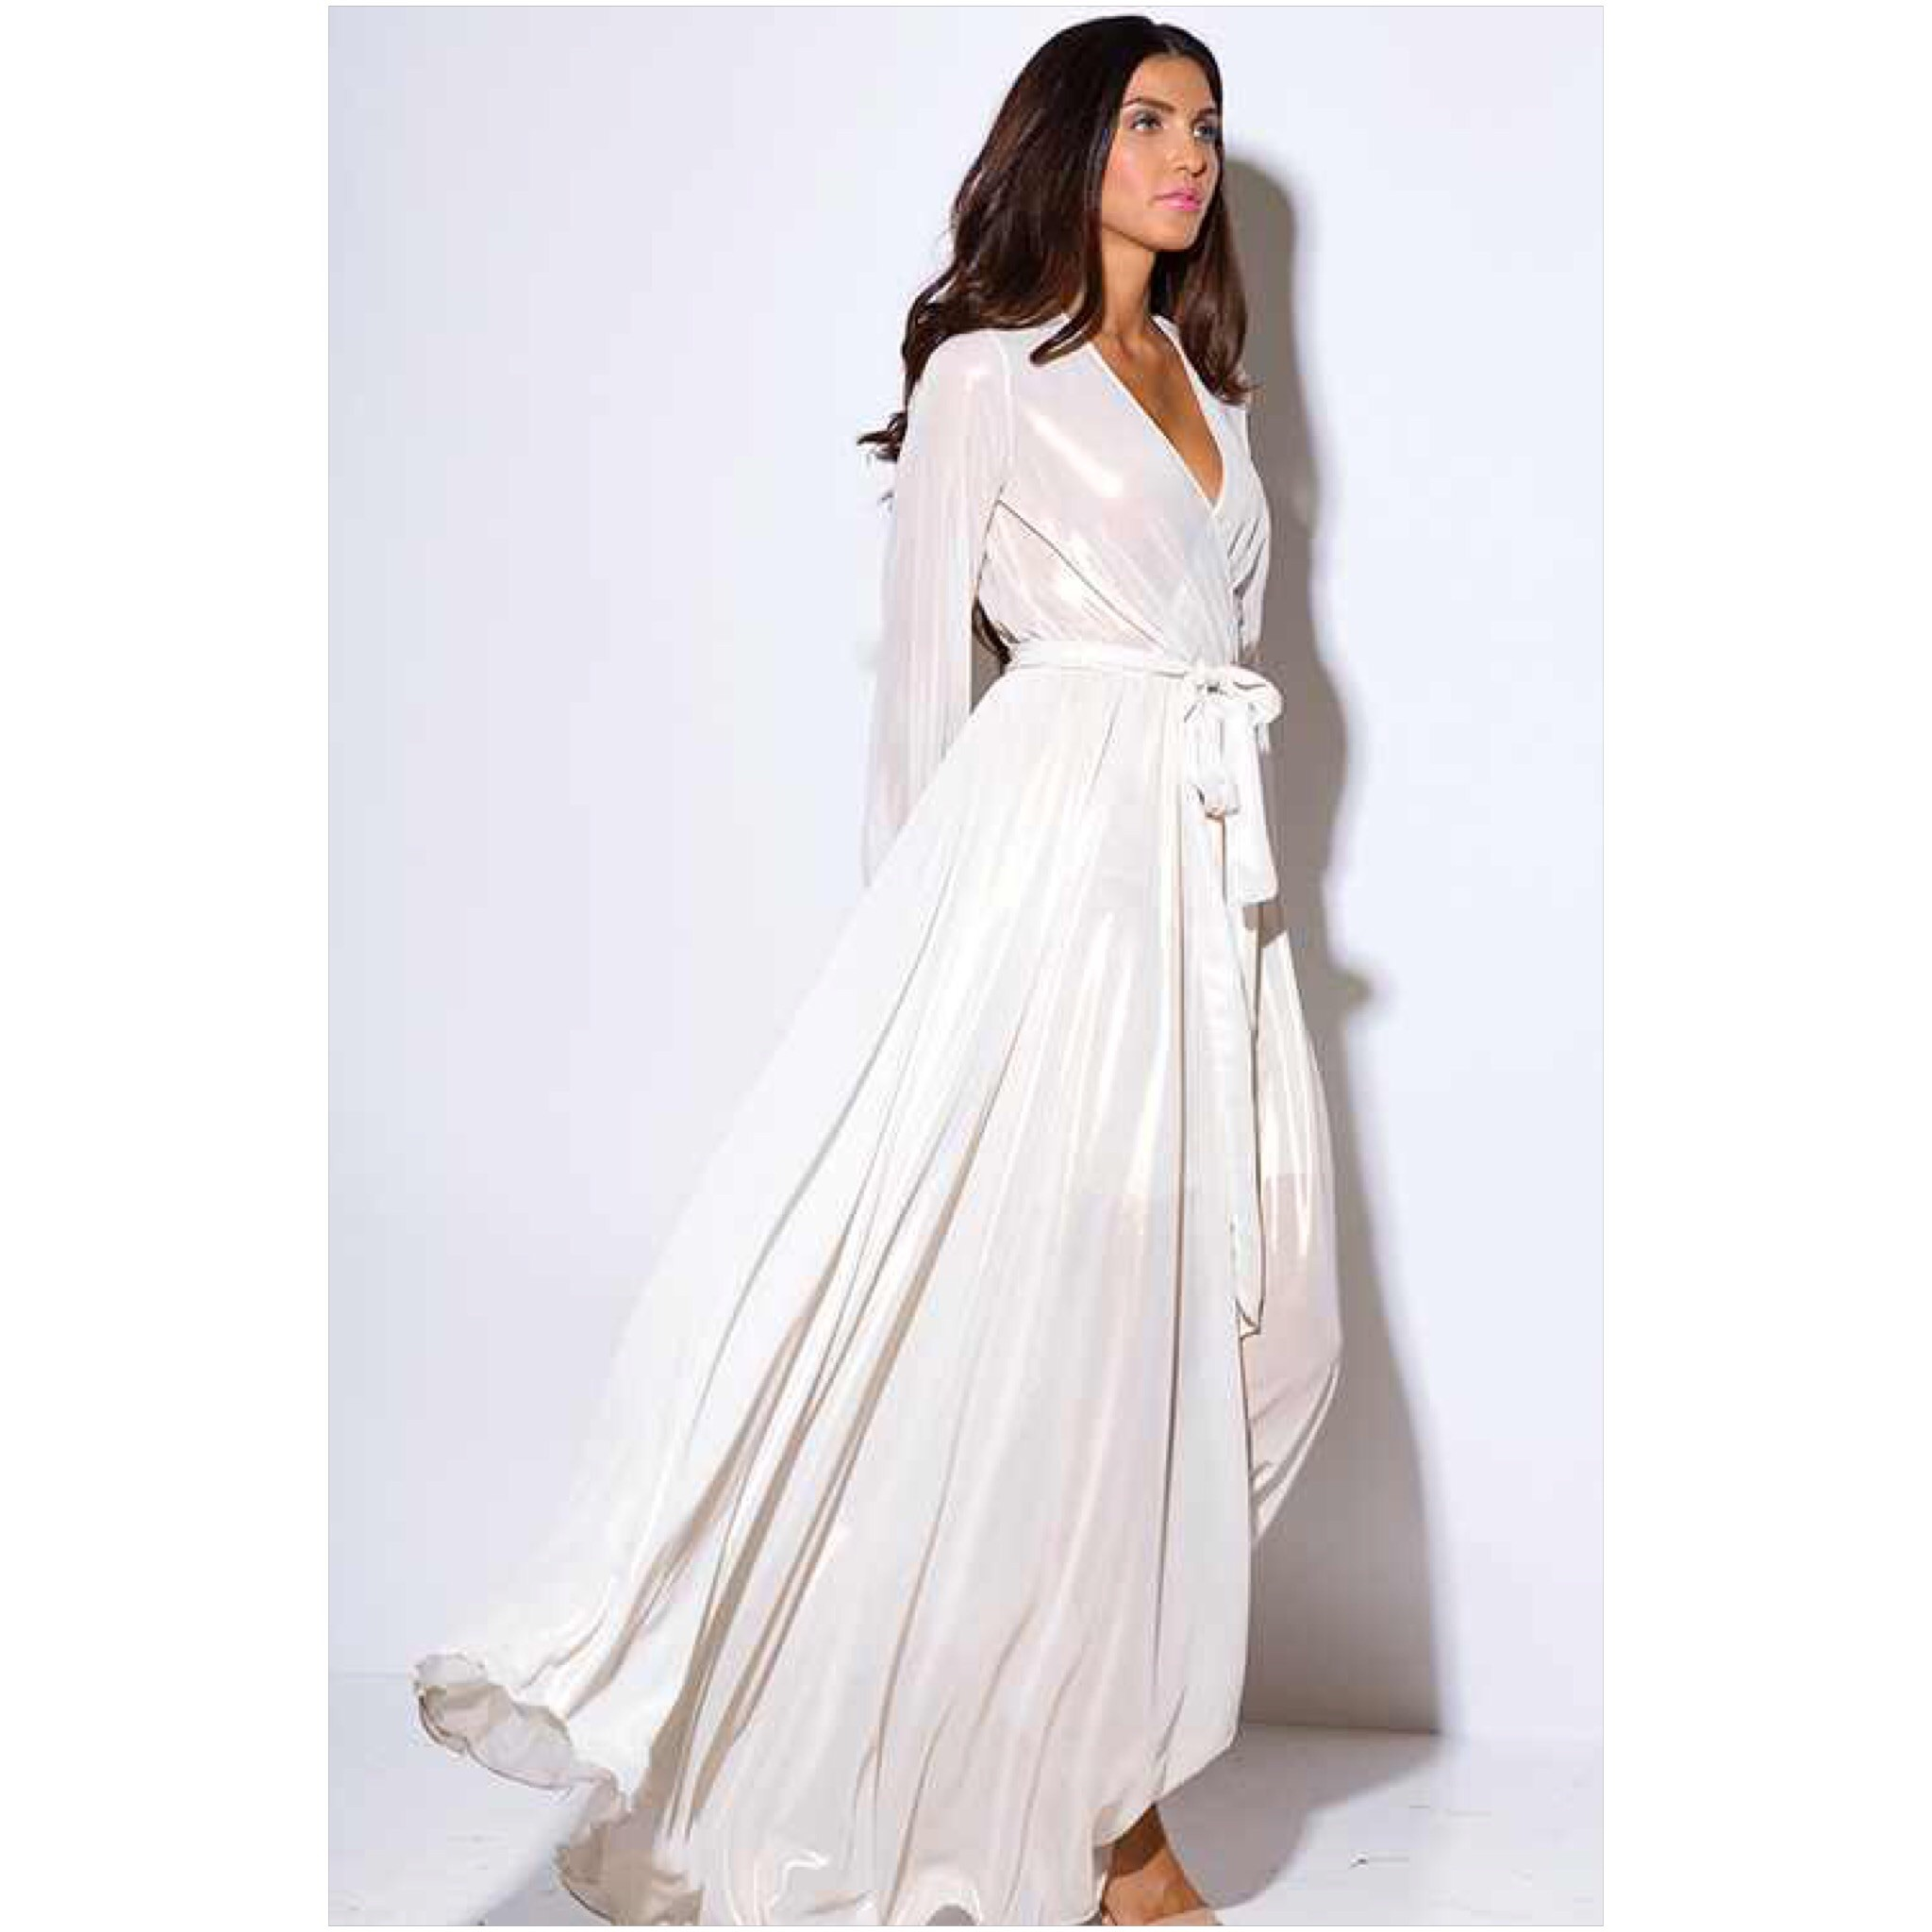 NEW ARRIVALS: MORE WHITE MAXI DRESSES